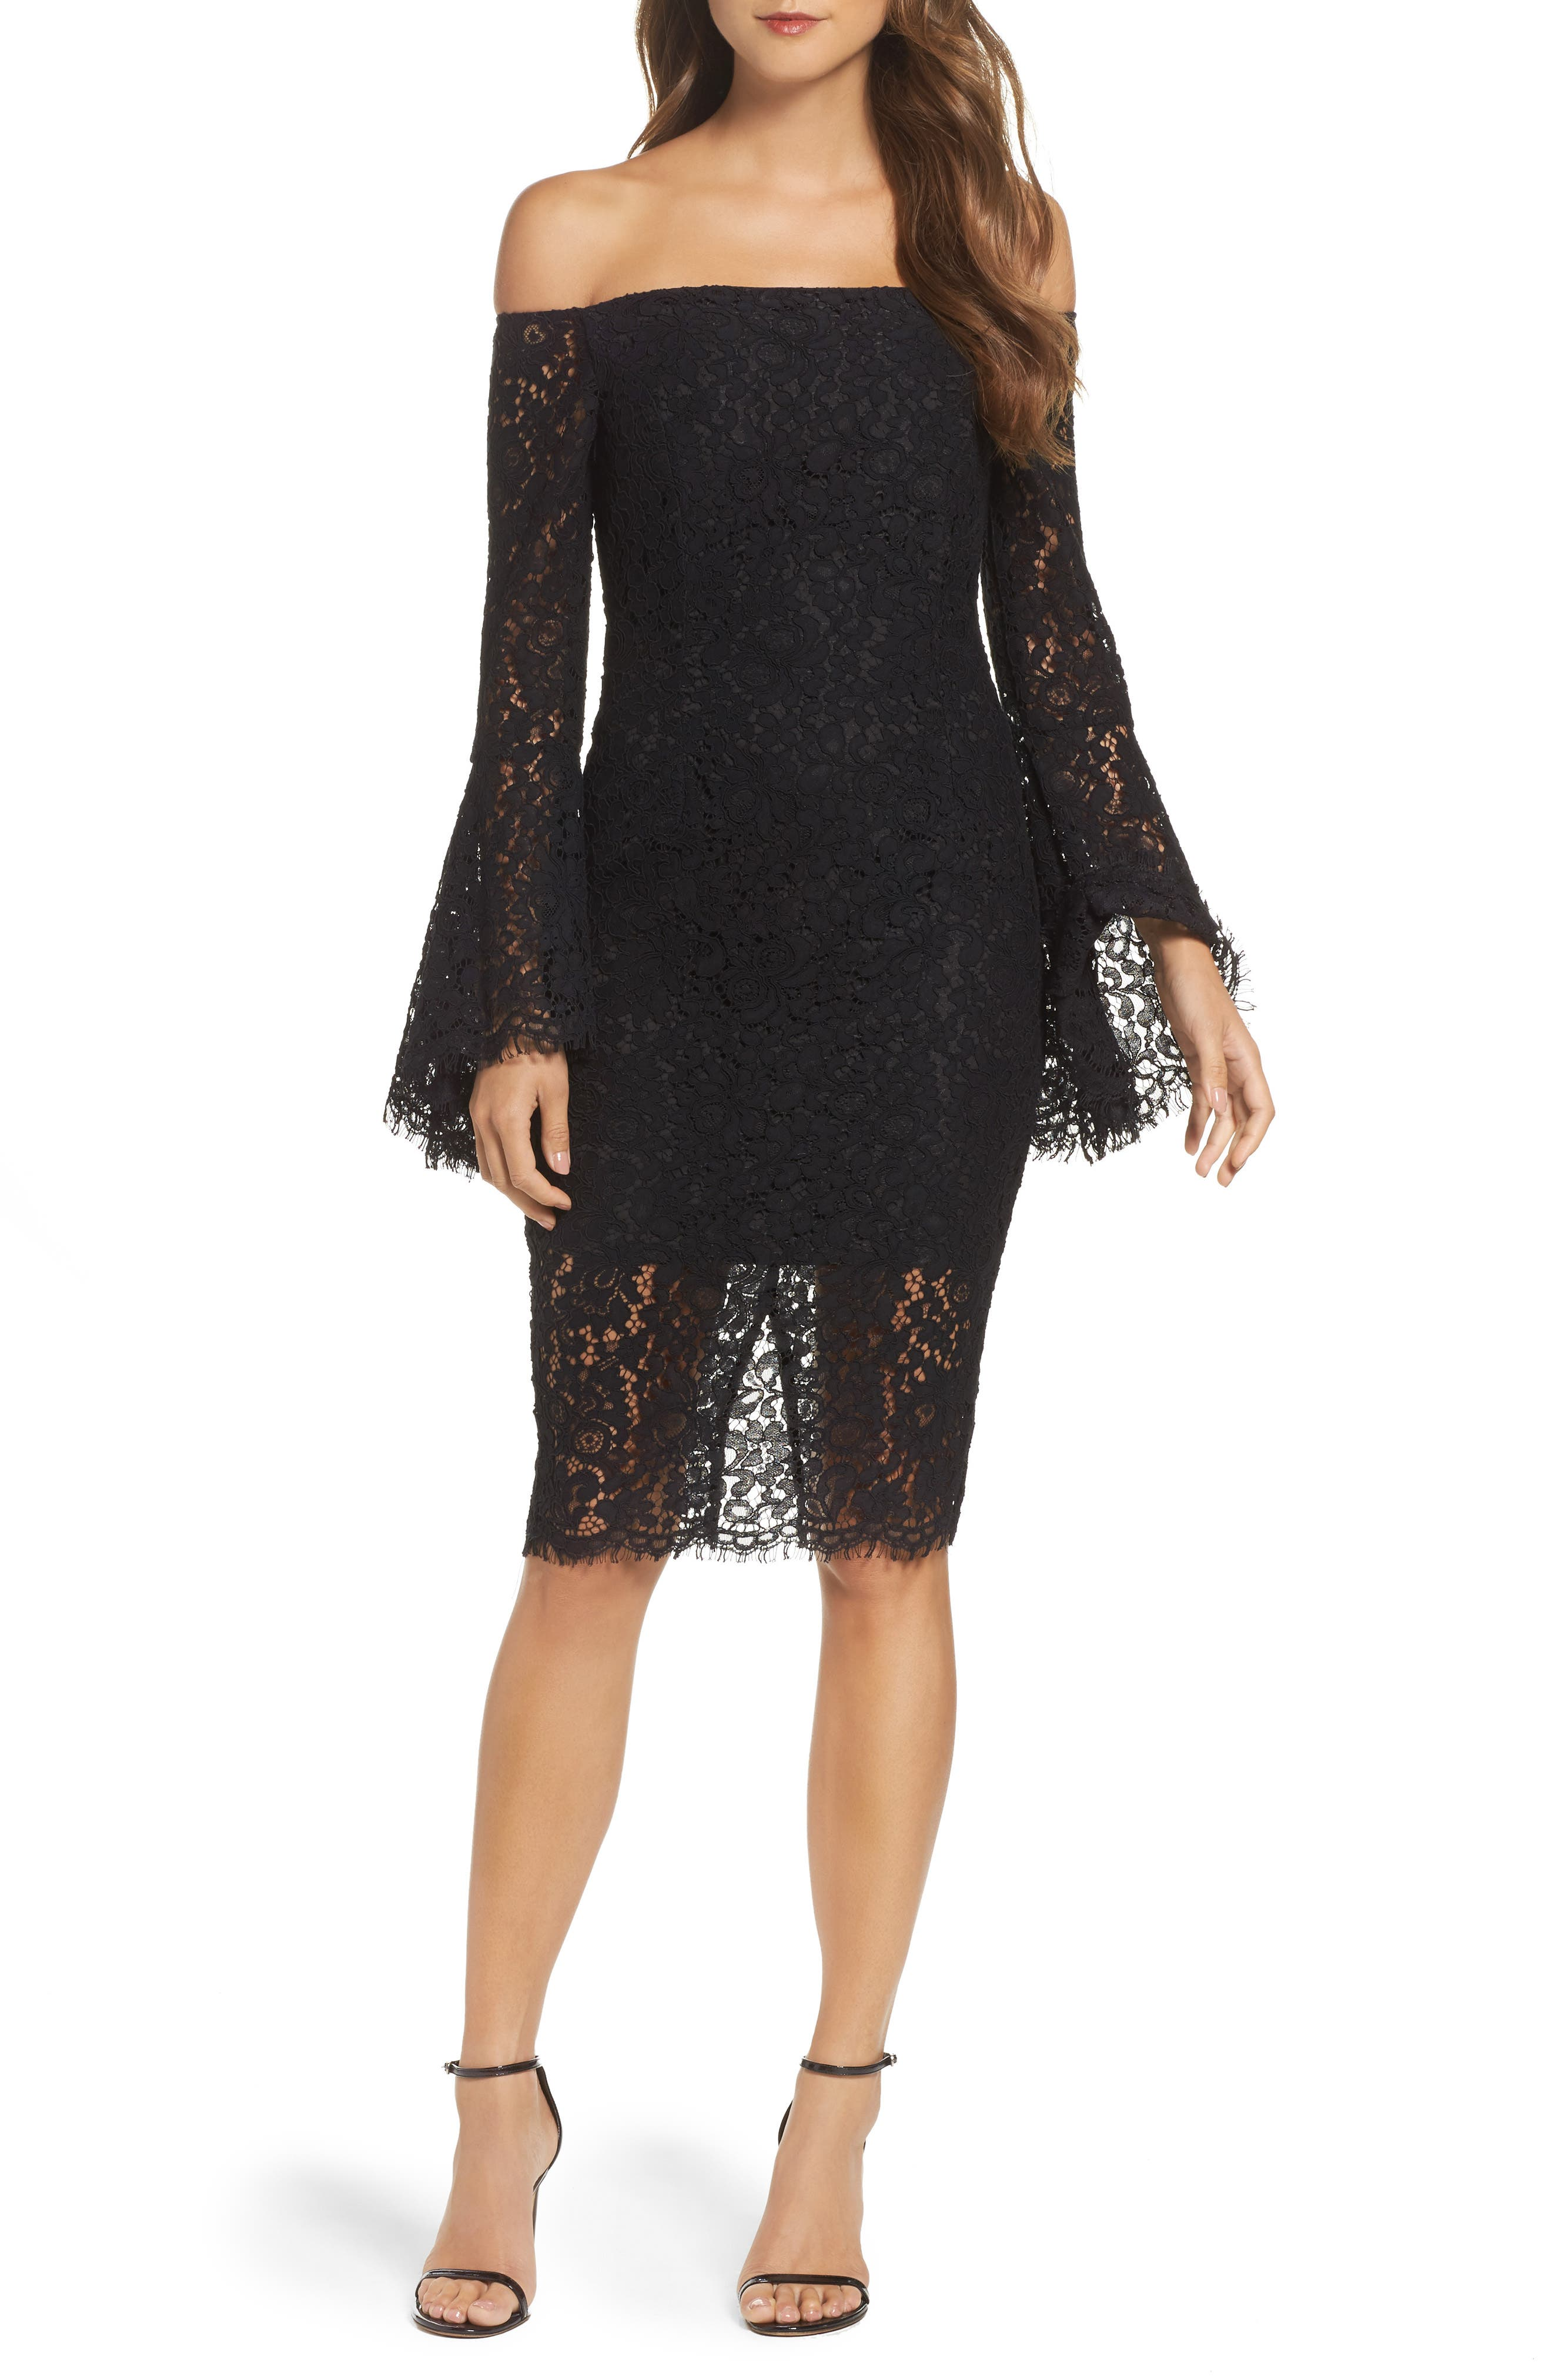 Black lace strapless dress with champagne slipper